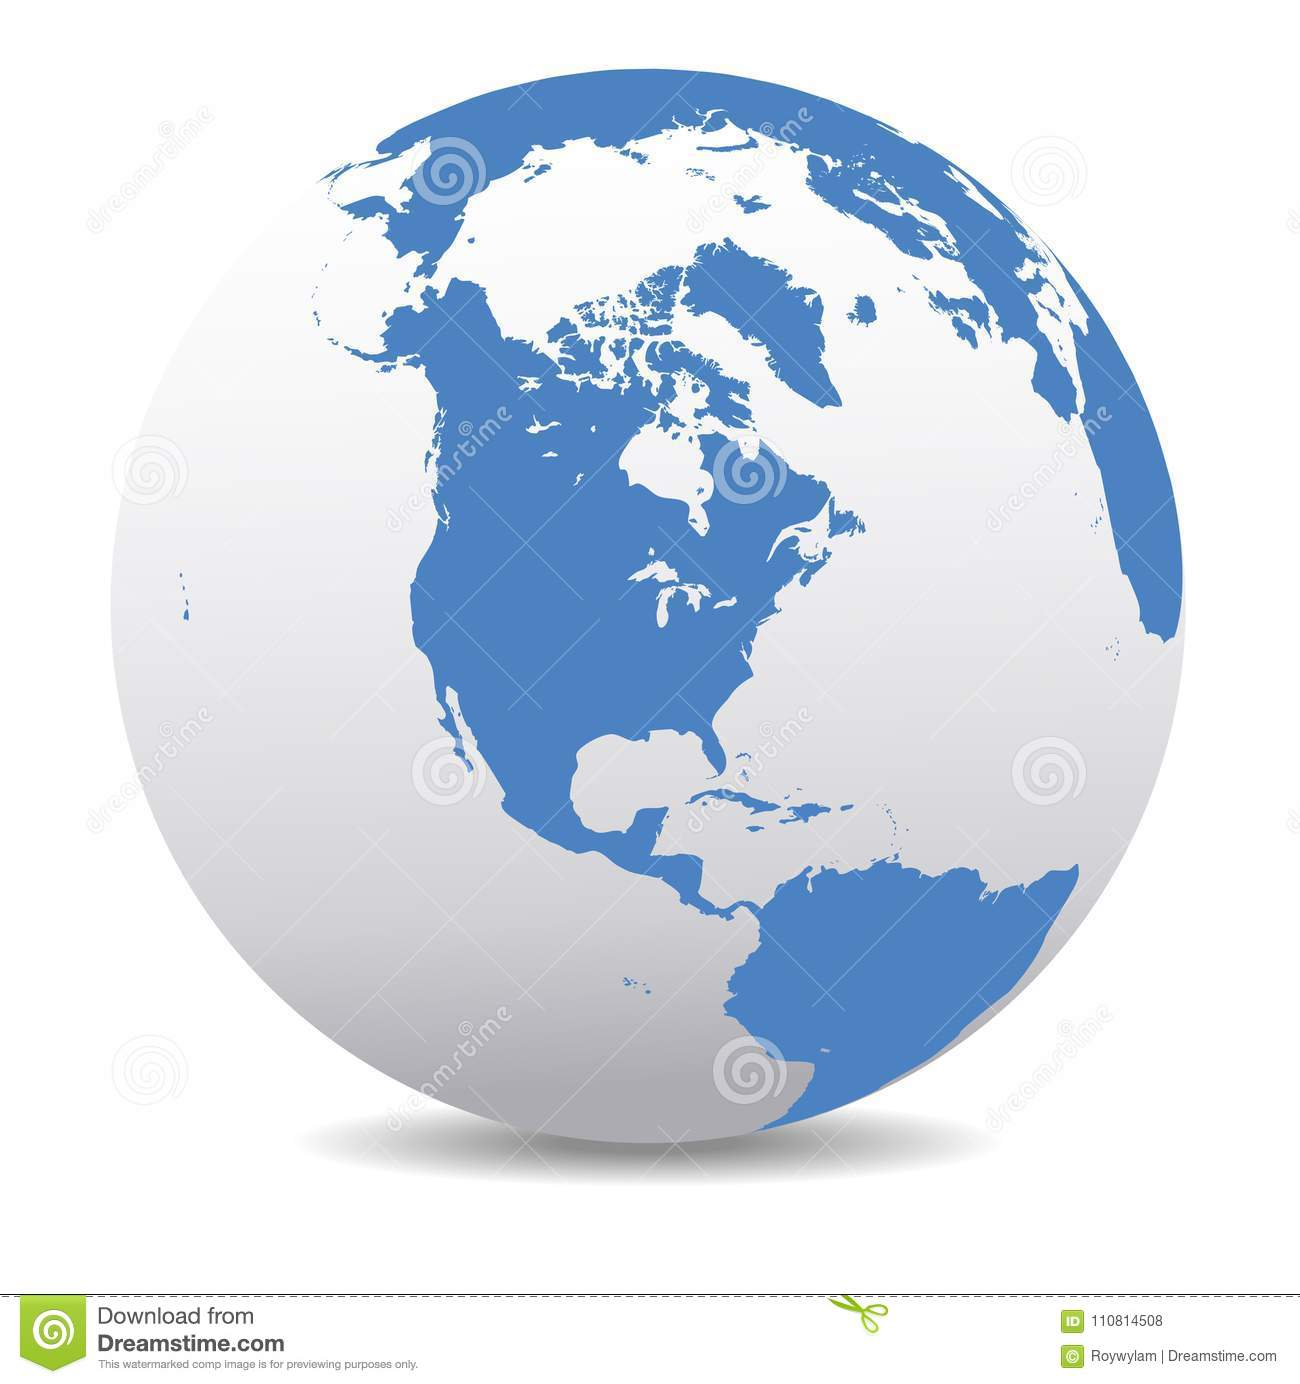 North South And Central America Global World Stock Vector